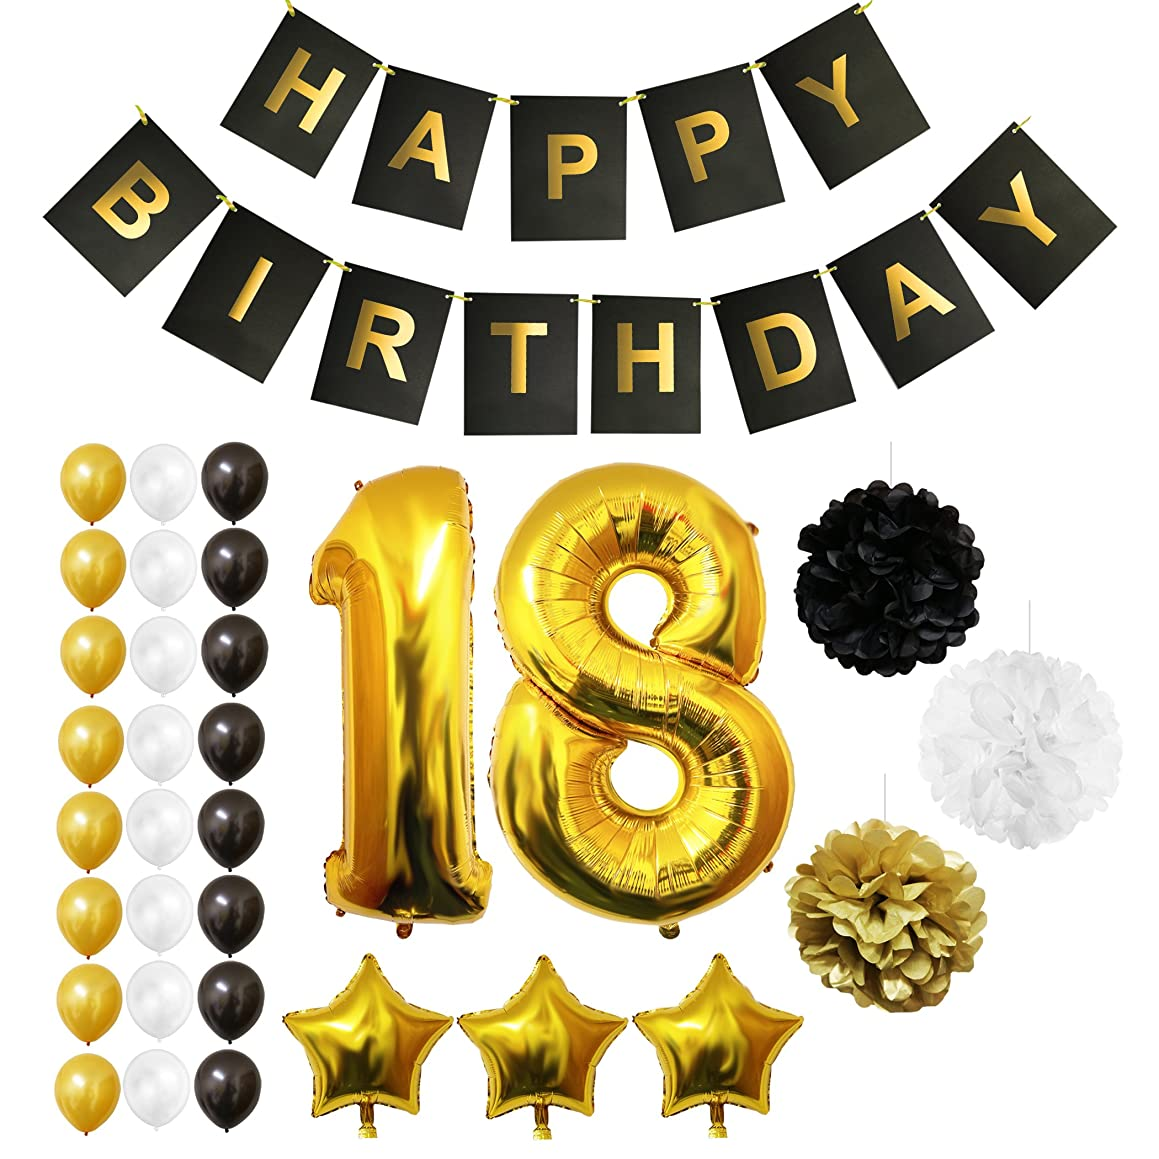 18th Happy Birthday Party Balloons, Supplies & Decorations by Belle Vous - 32 Pc Set - Large 18 Years Foil Balloon 12